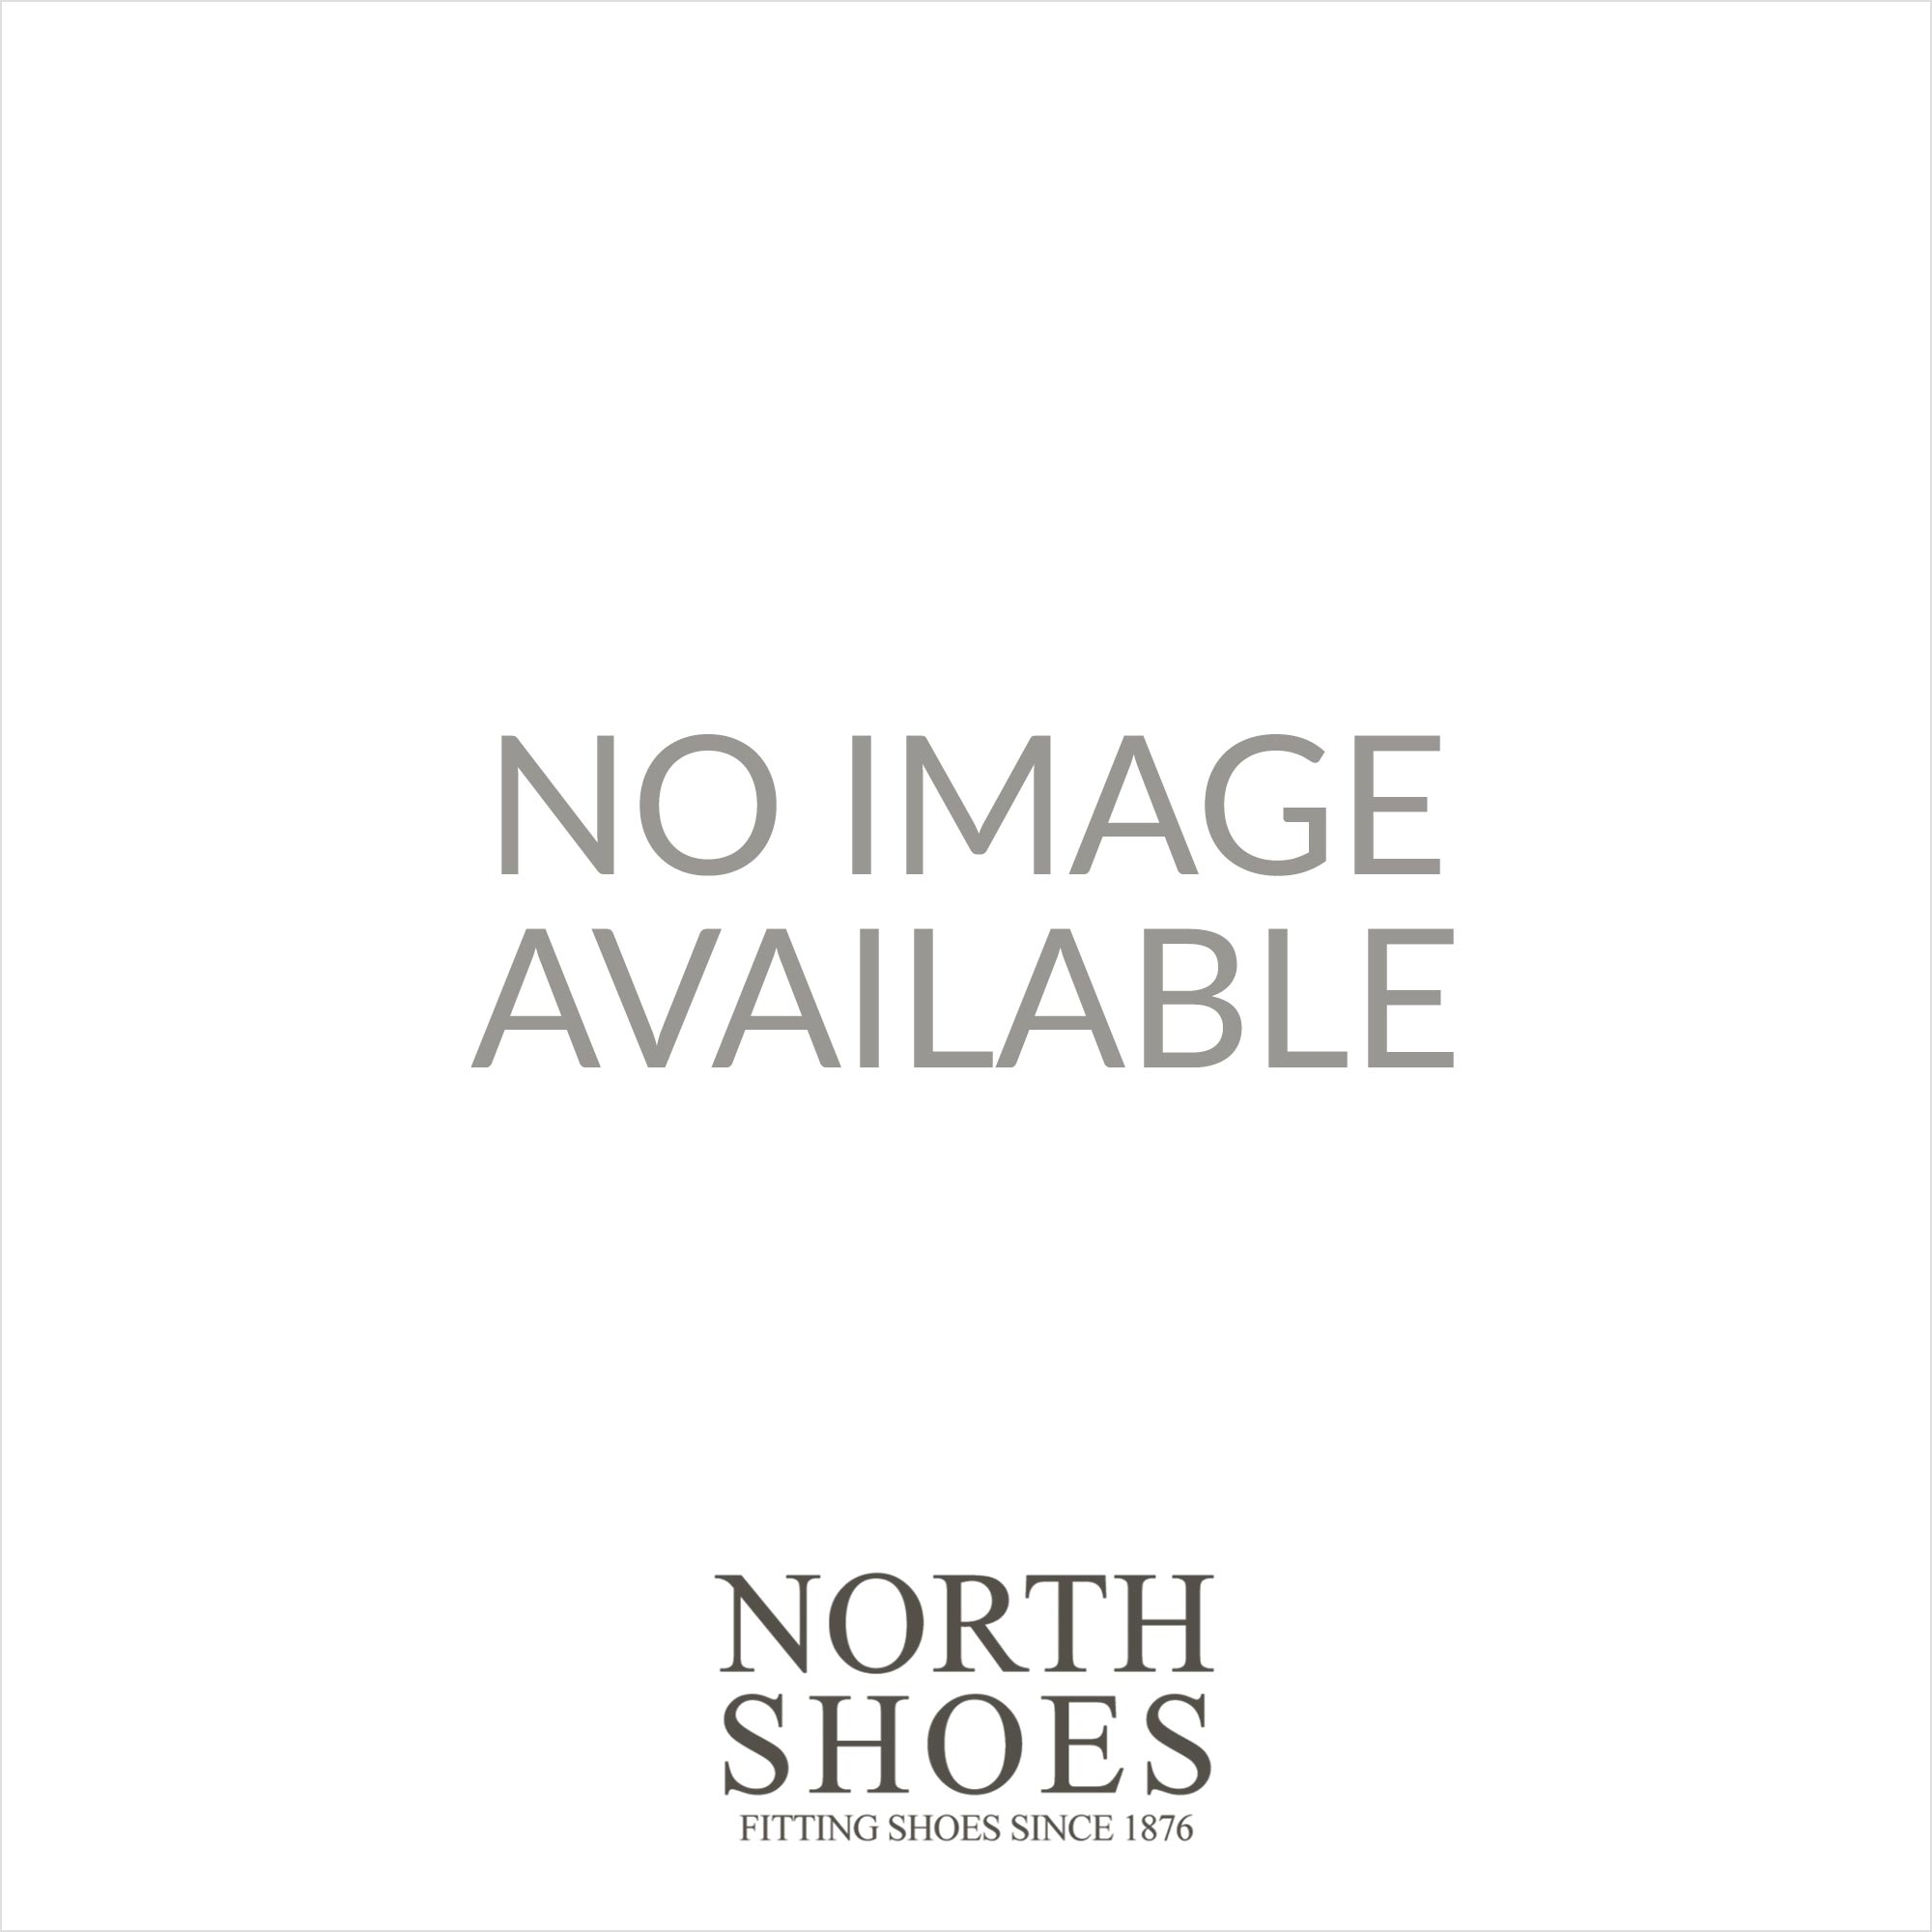 a90054c25026 Skechers Skech Appeal - Sittin Pretty 81847L Black Glitter Girls Bungee  Lace/ Rip Tape Trainer - Skechers from North Shoes UK